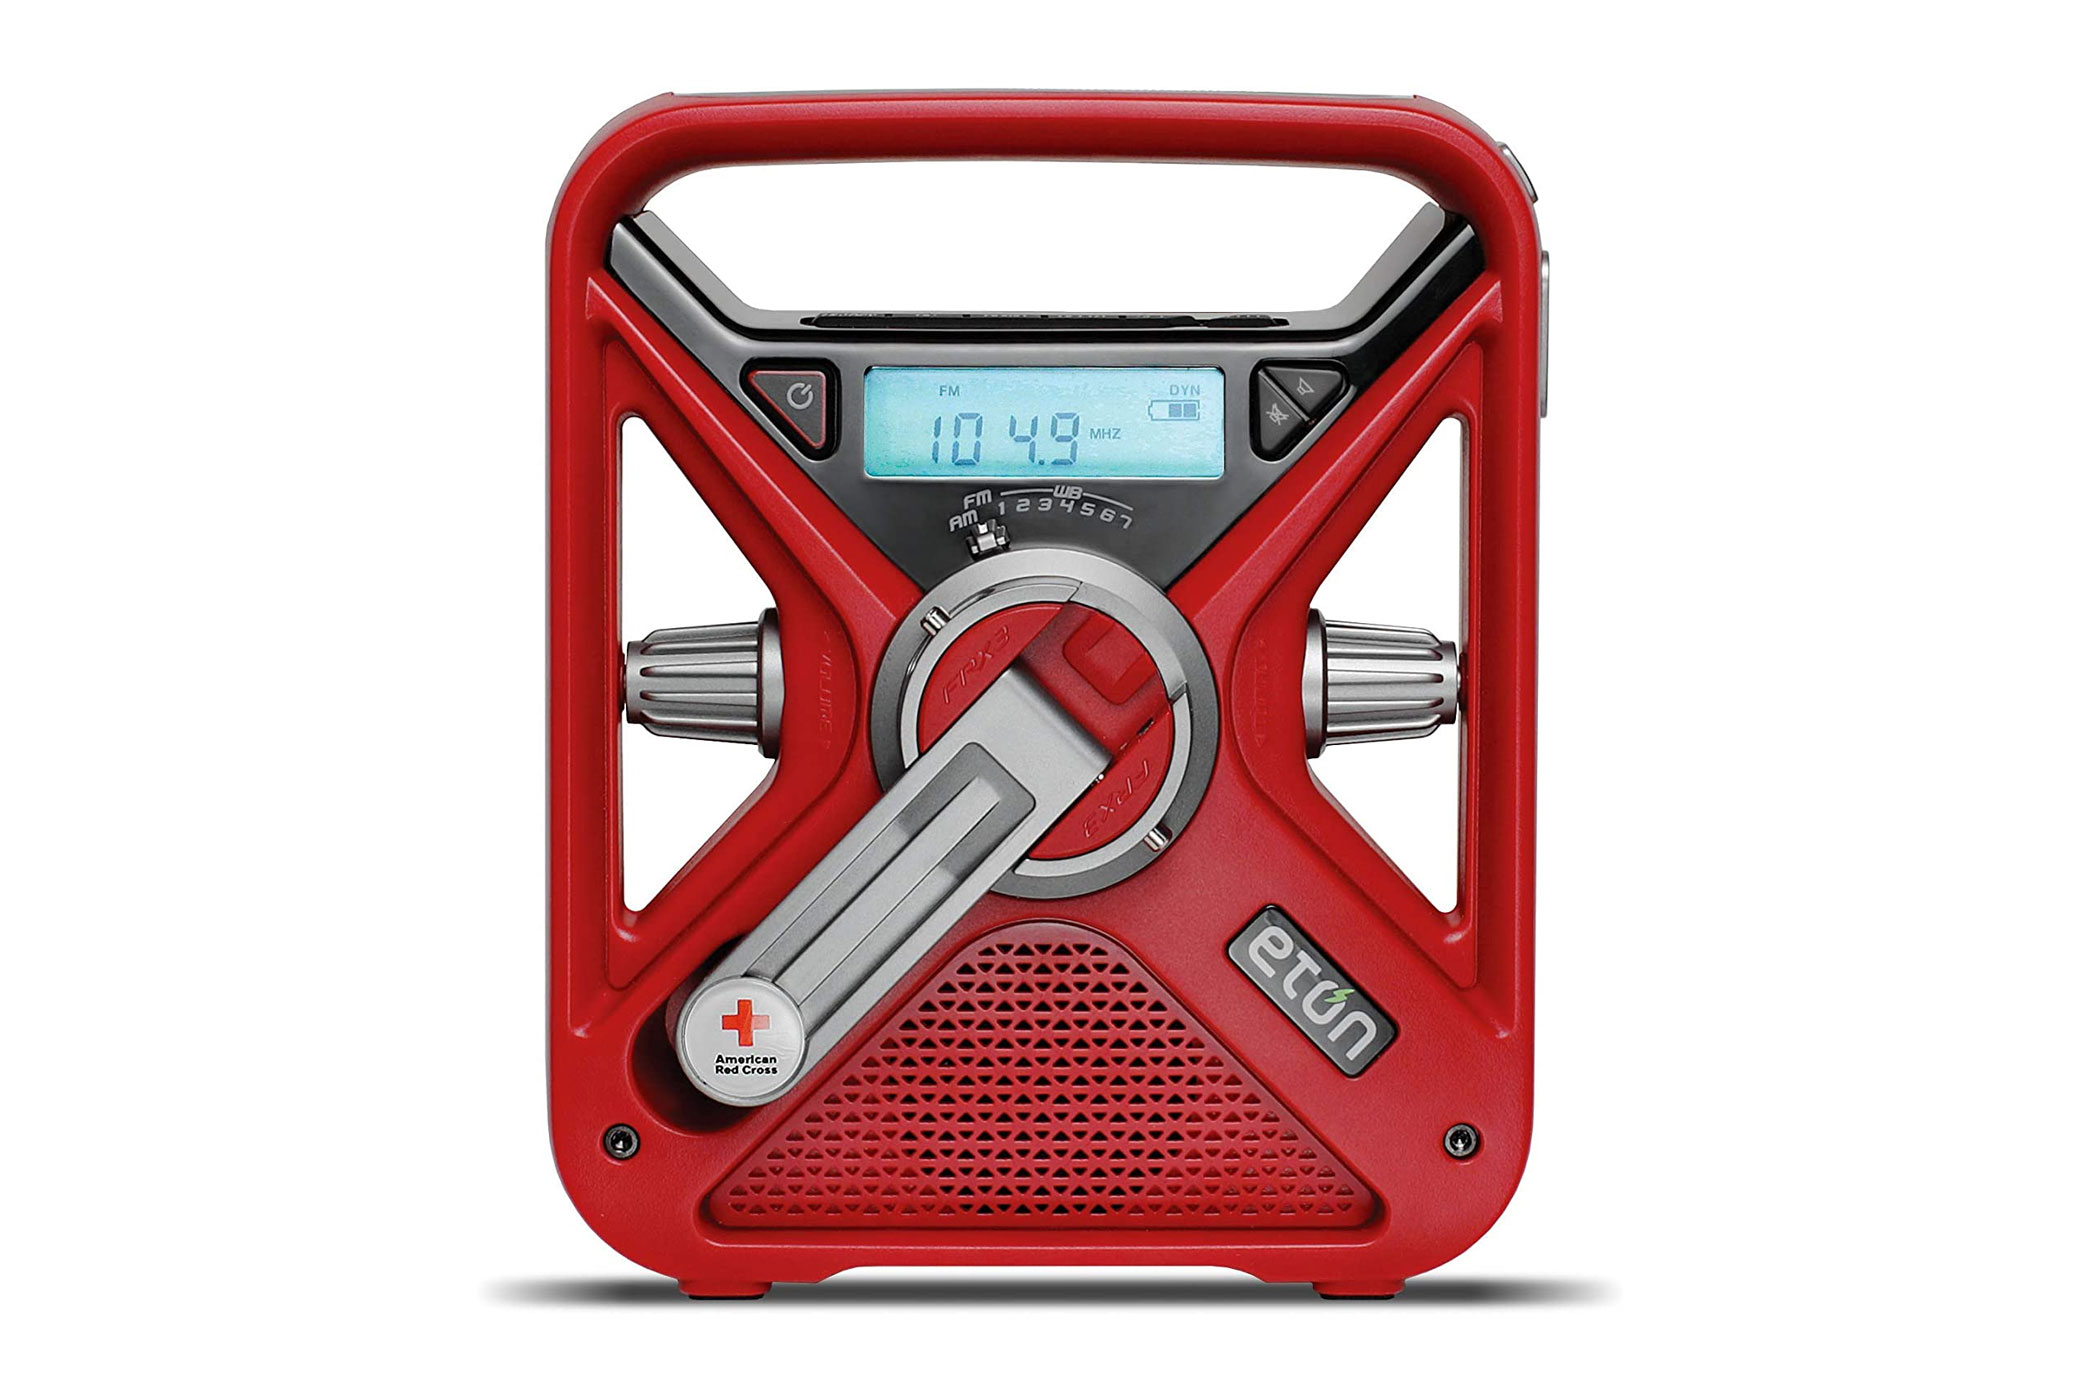 American Red Cross Emergency NOAA Weather Radio